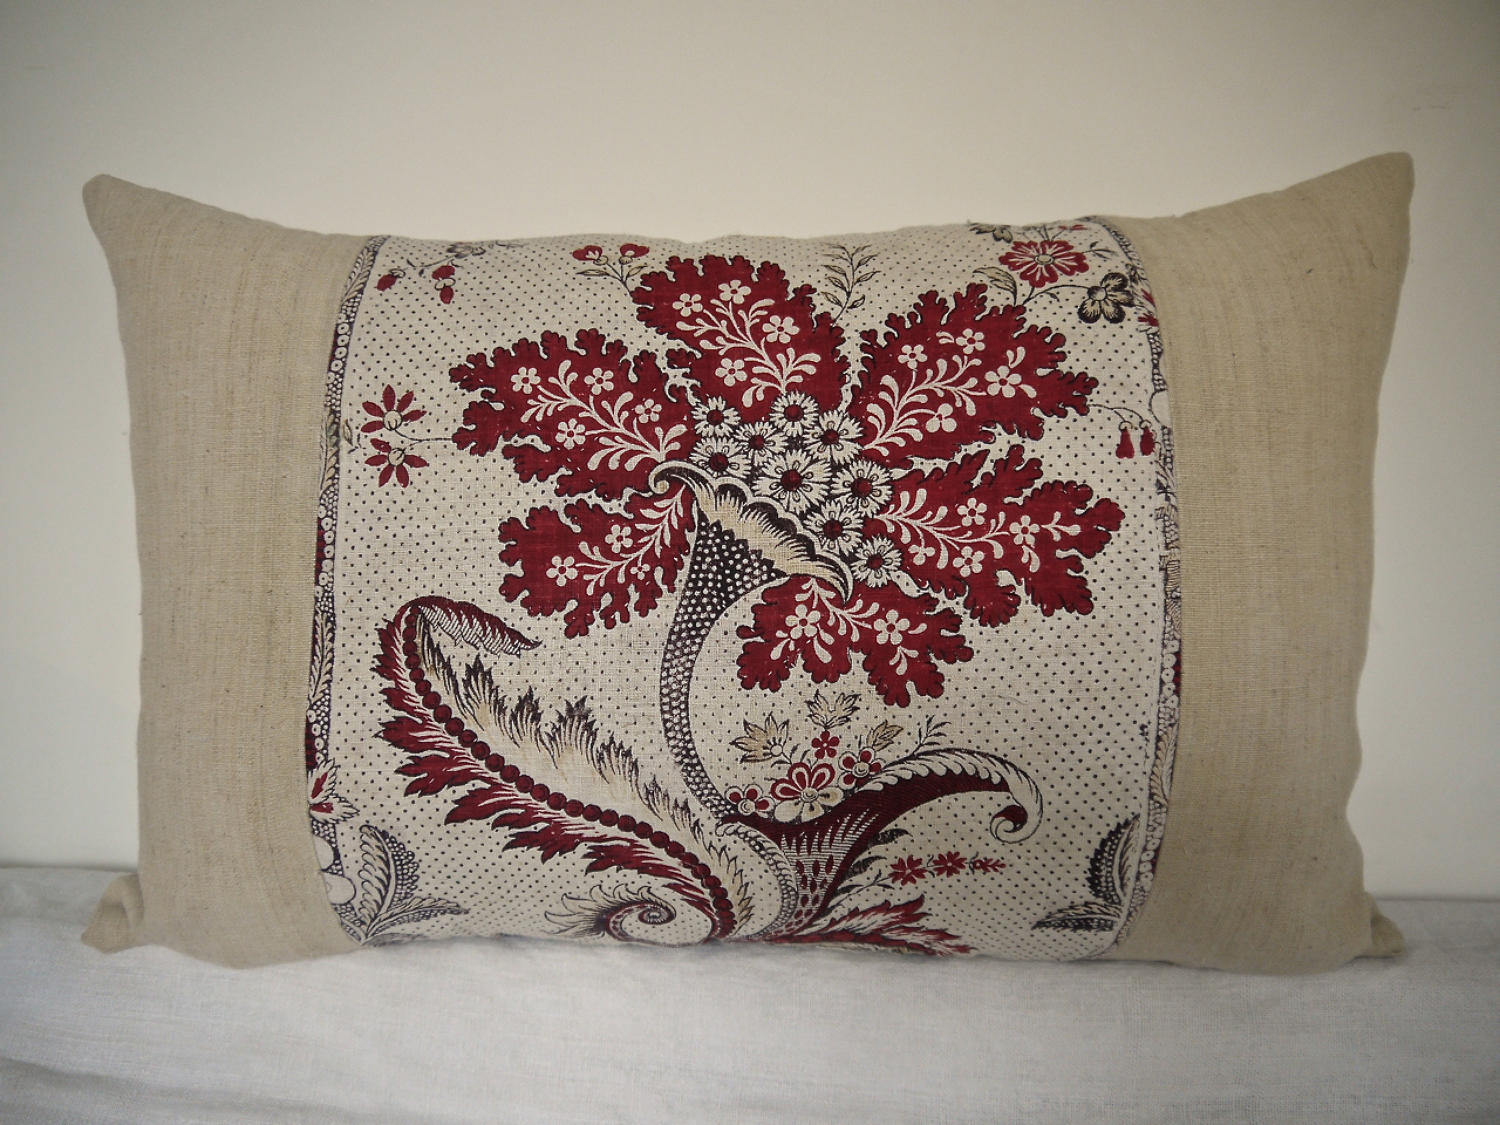 18th Century French La Cornu Fleurie Cushion